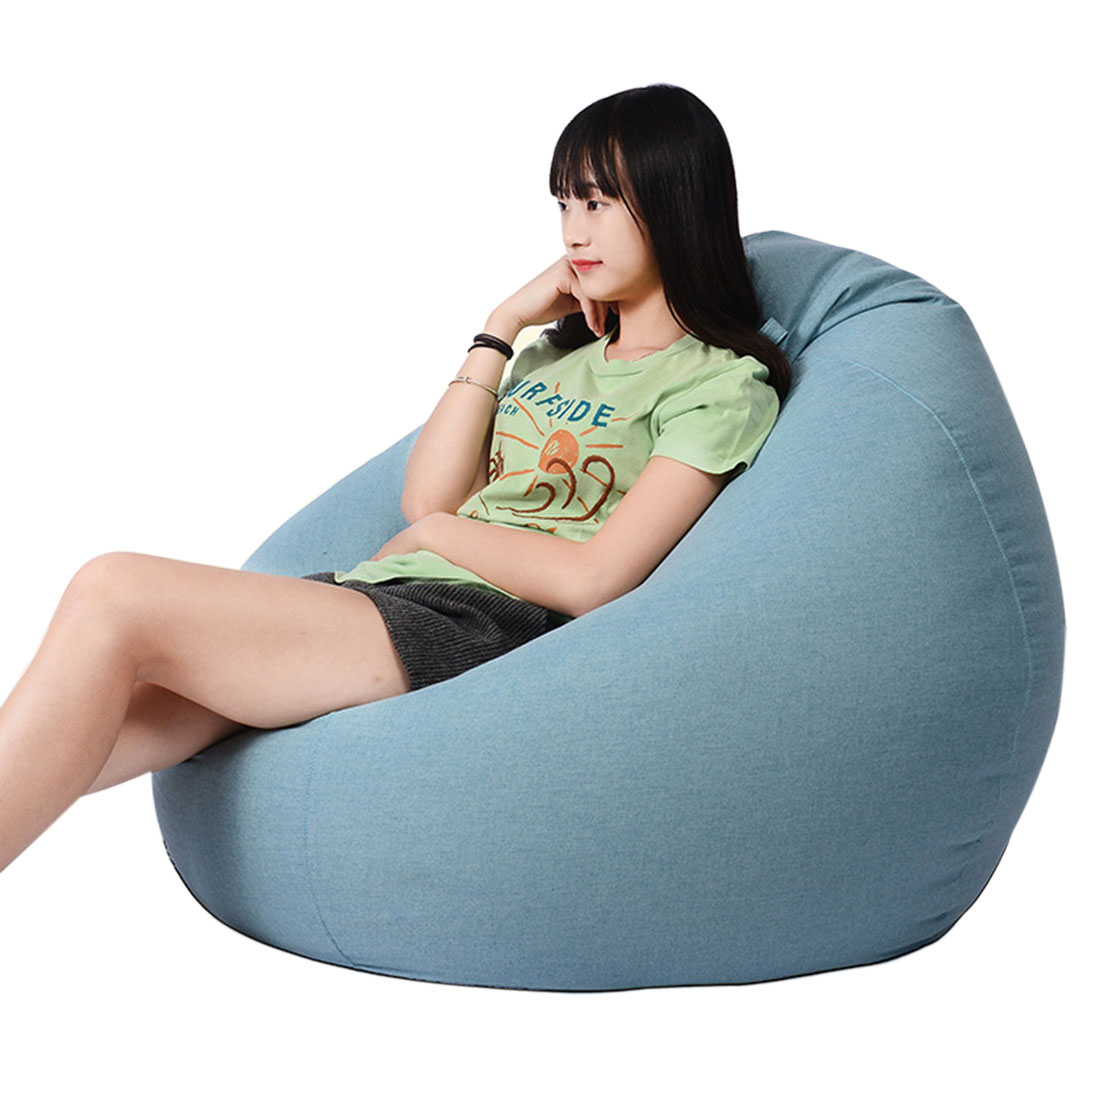 Bean Bag Sofas New Fashion Fashion Bean Bag Sofa Signle Chair Cover Lounger Lazy Sofa Room Furniture With Large Capacity Durable Storage Bag Living Room Furniture